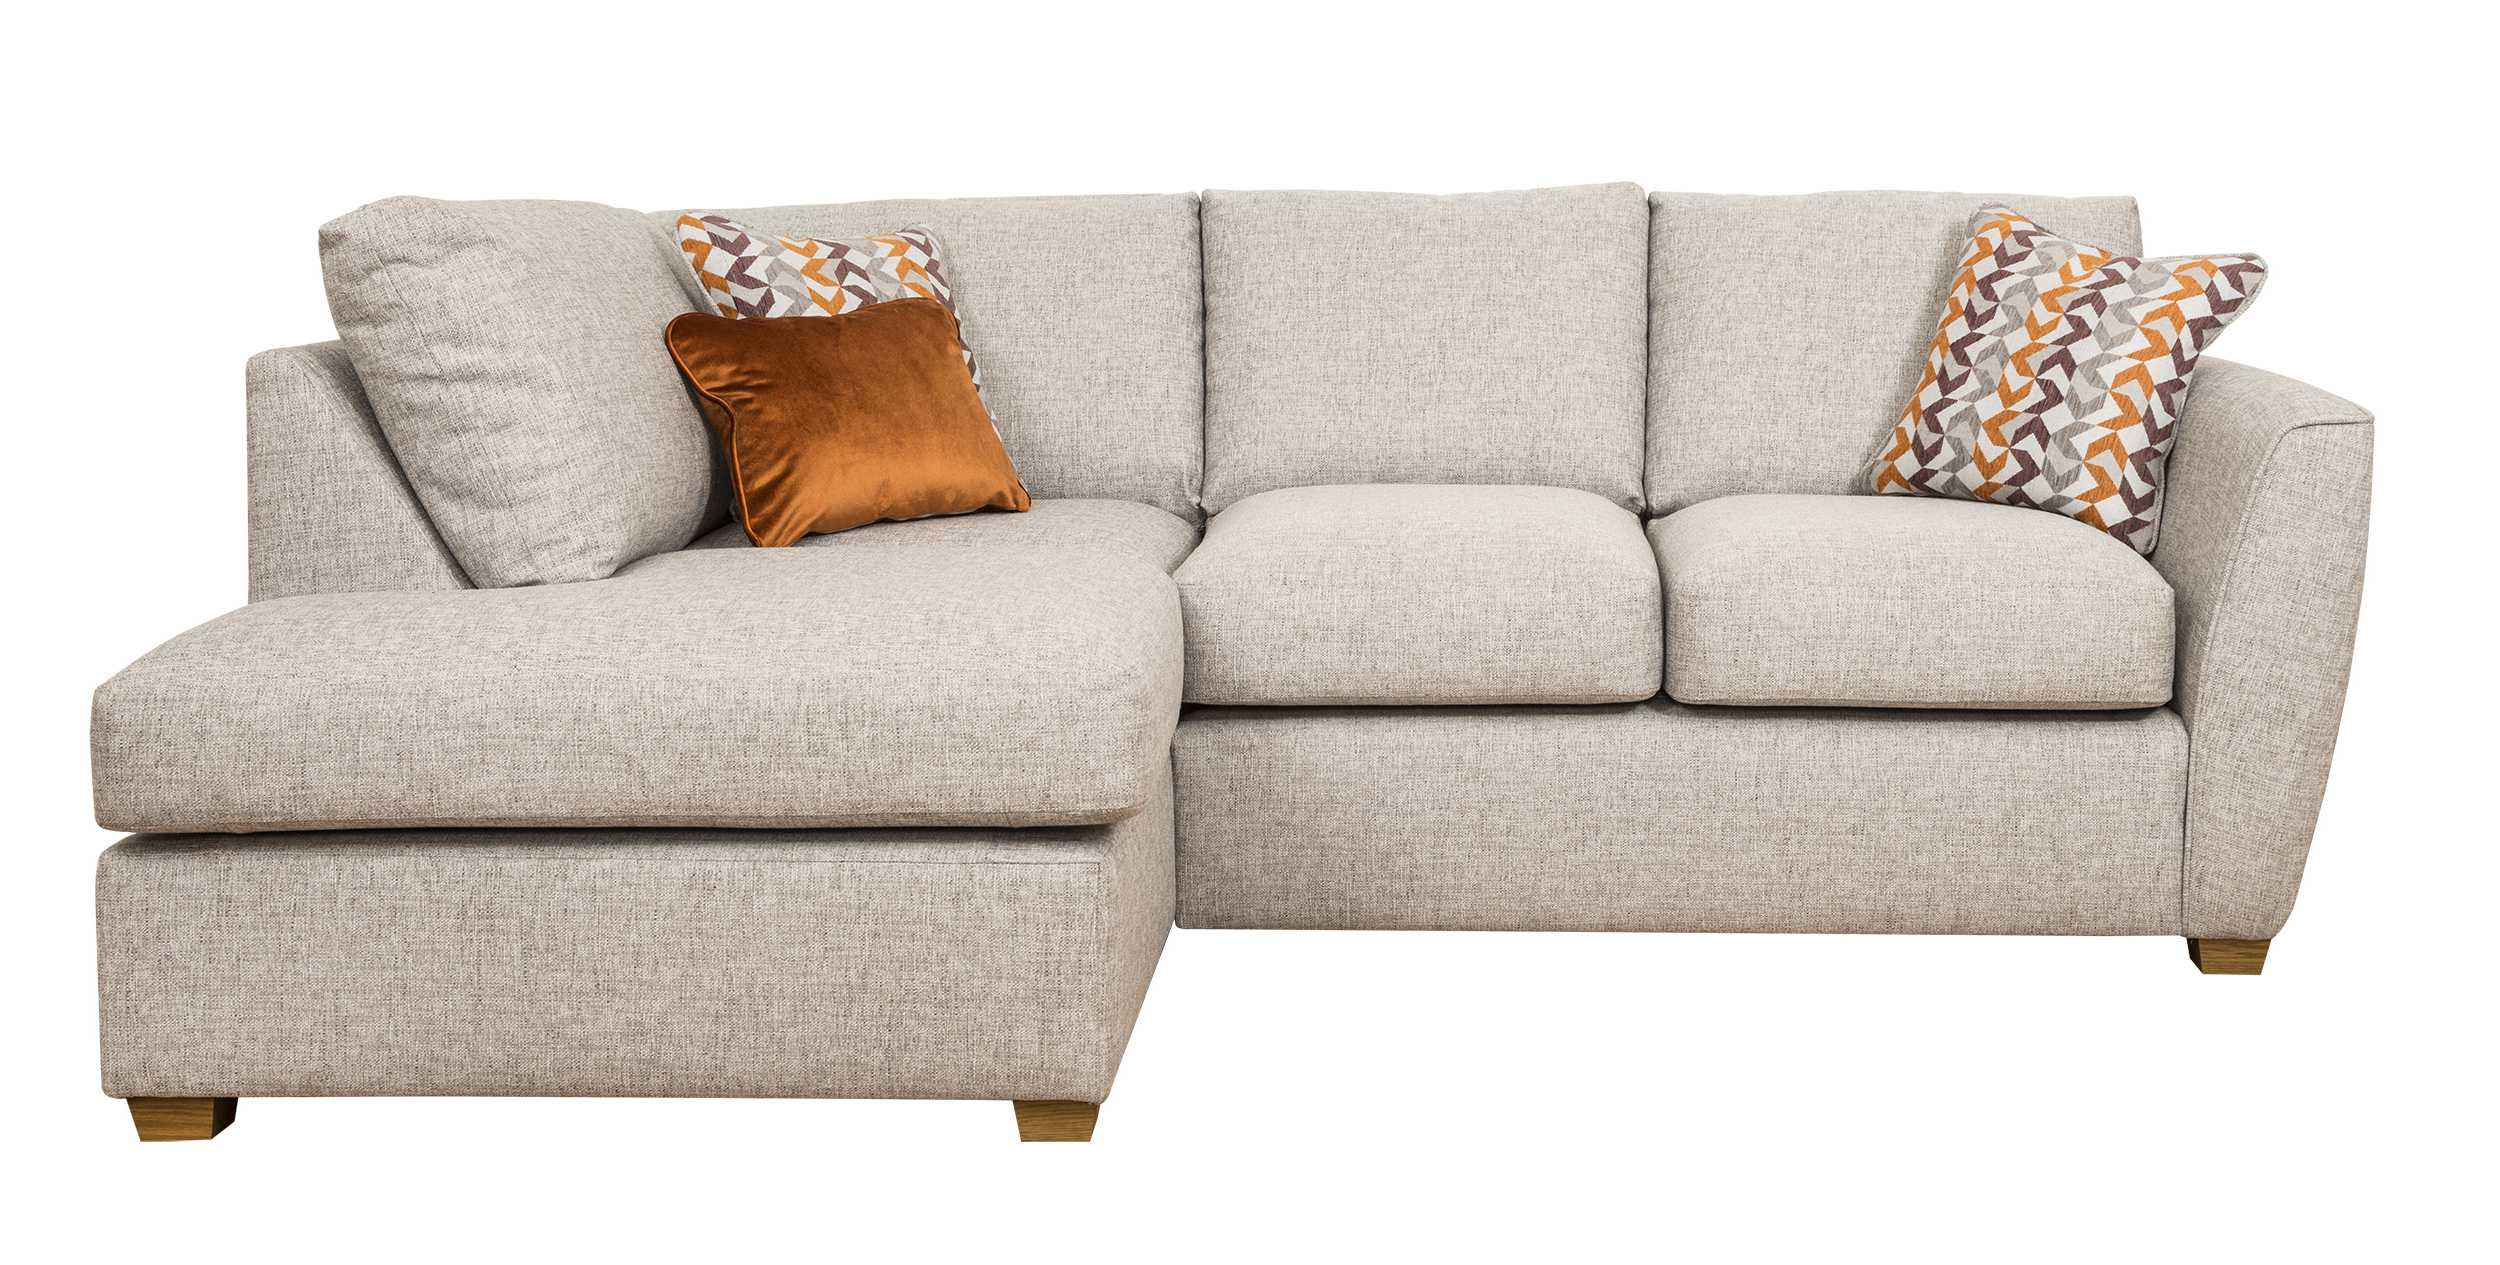 Grey Sofa Collection C2 NEW